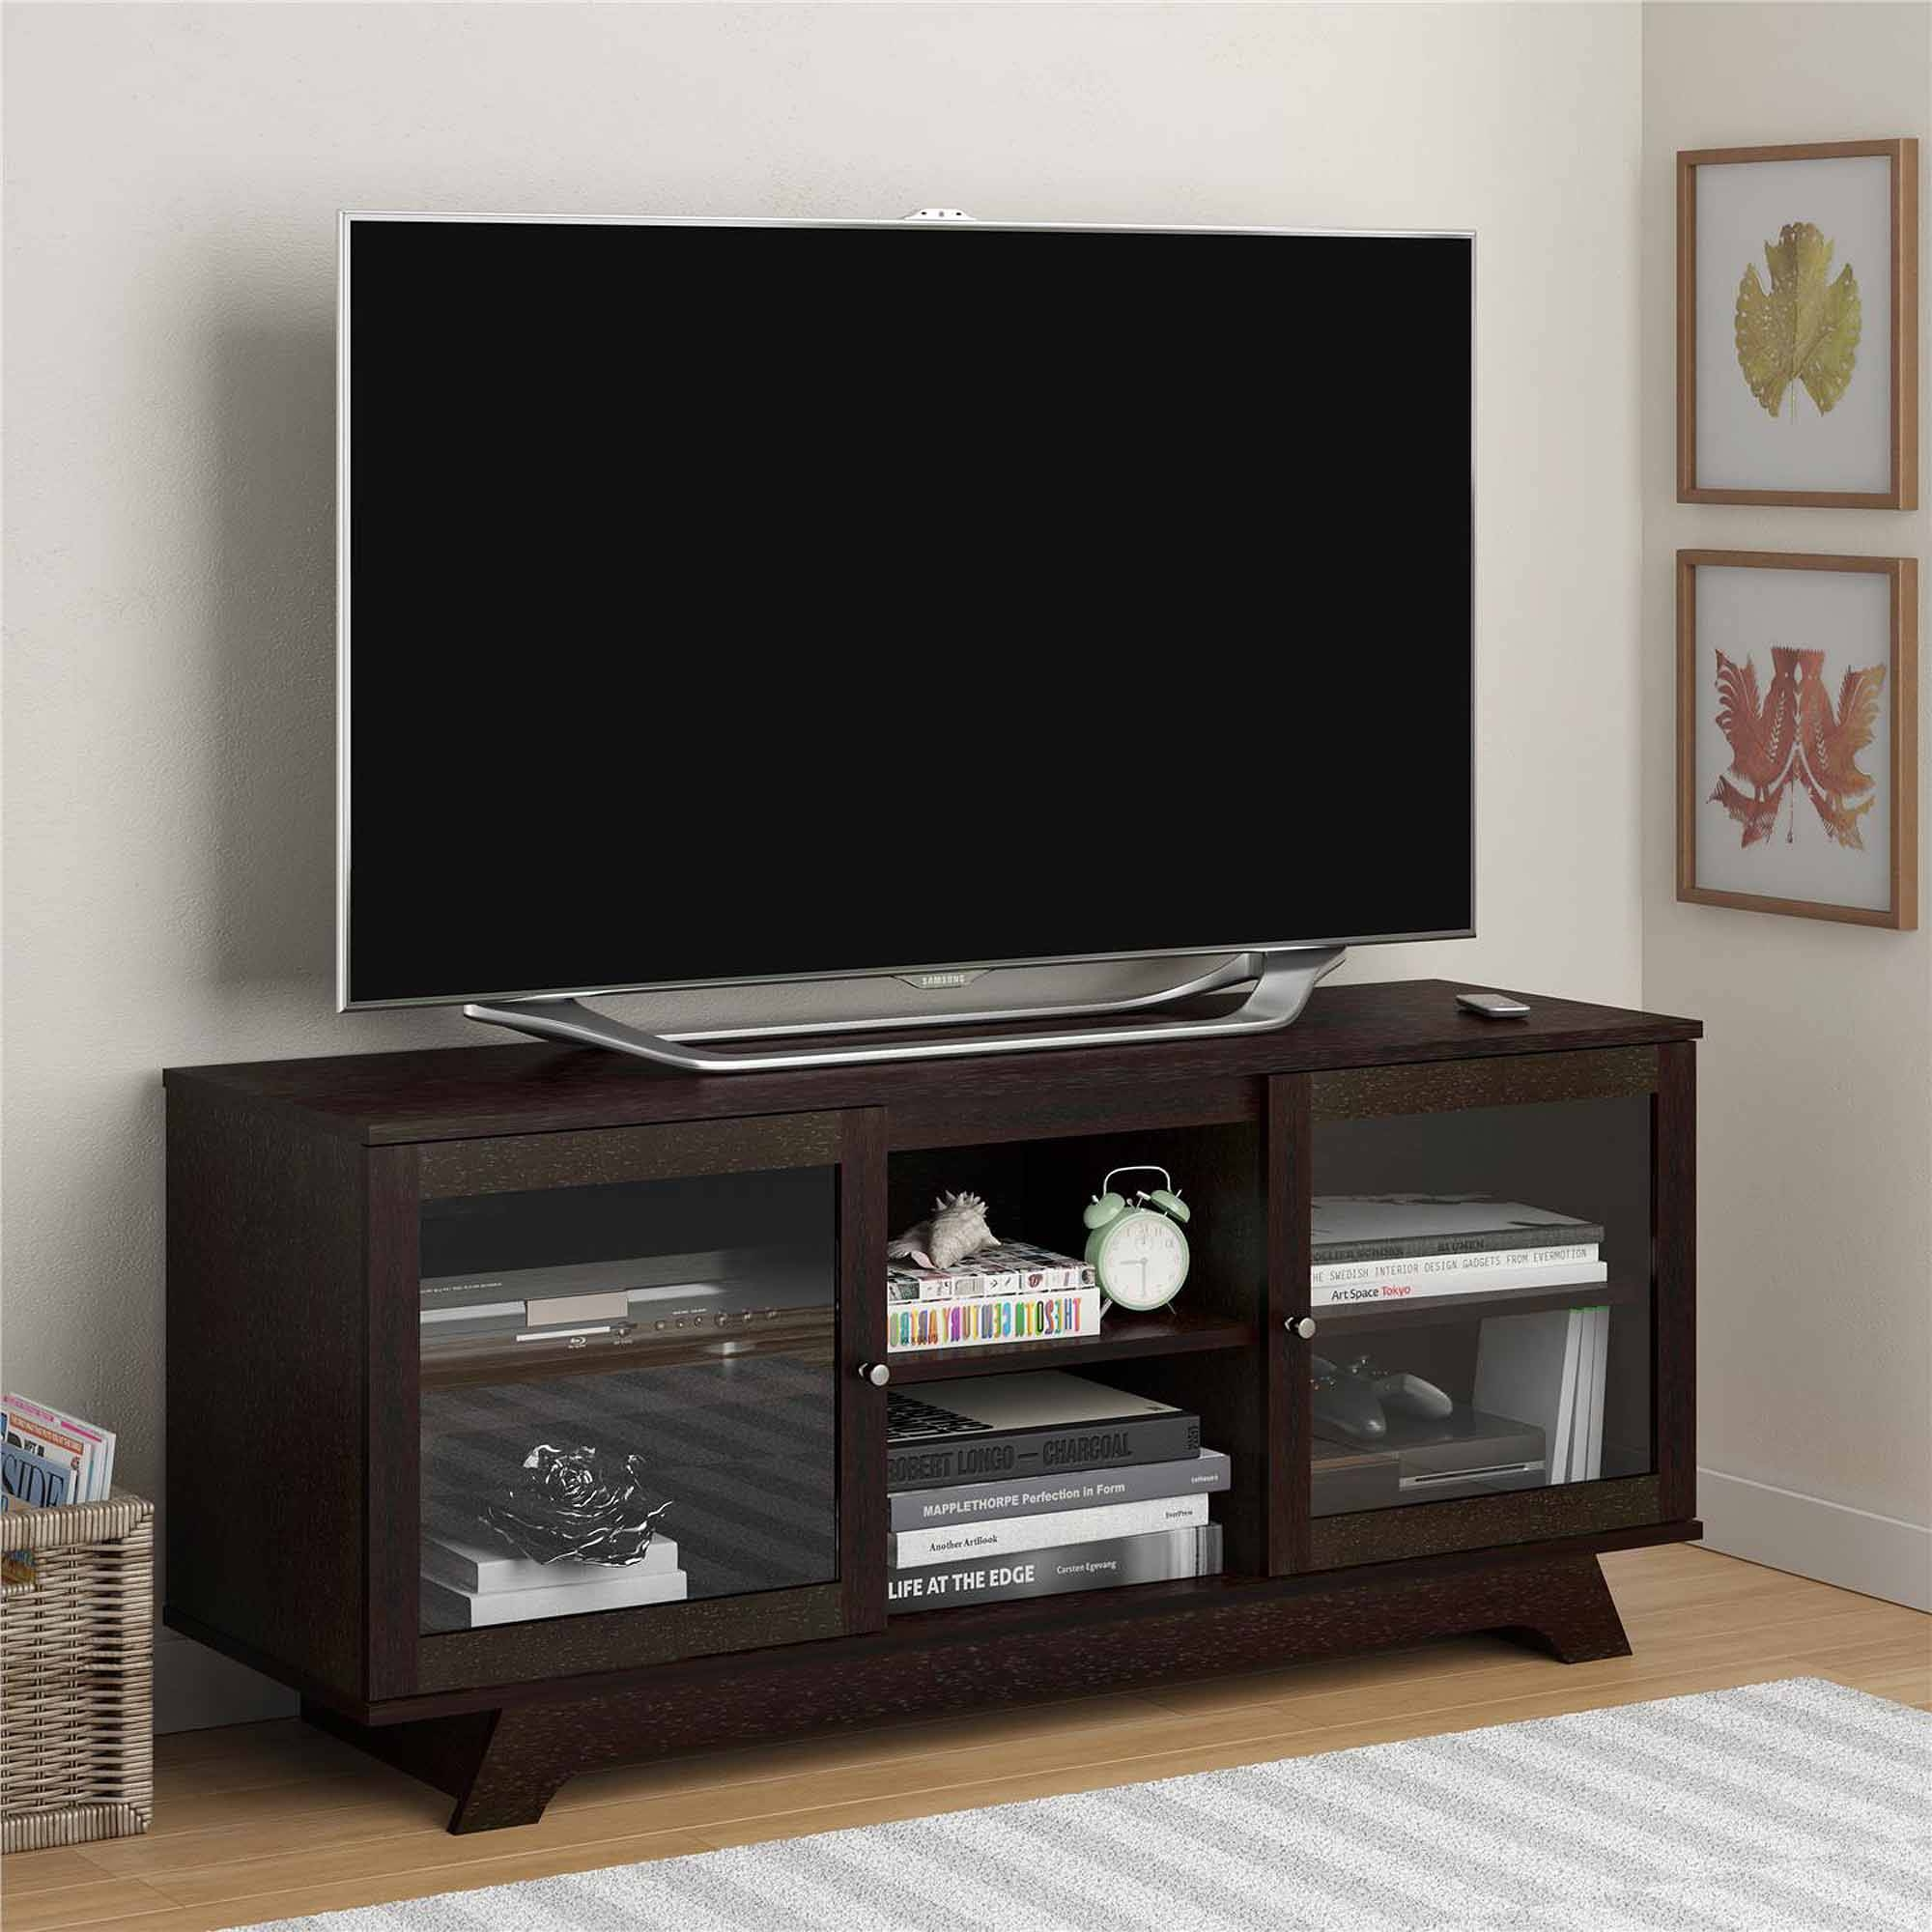 Tv Stands & Entertainment Centers - Walmart within Tv Entertainment Unit (Image 11 of 15)